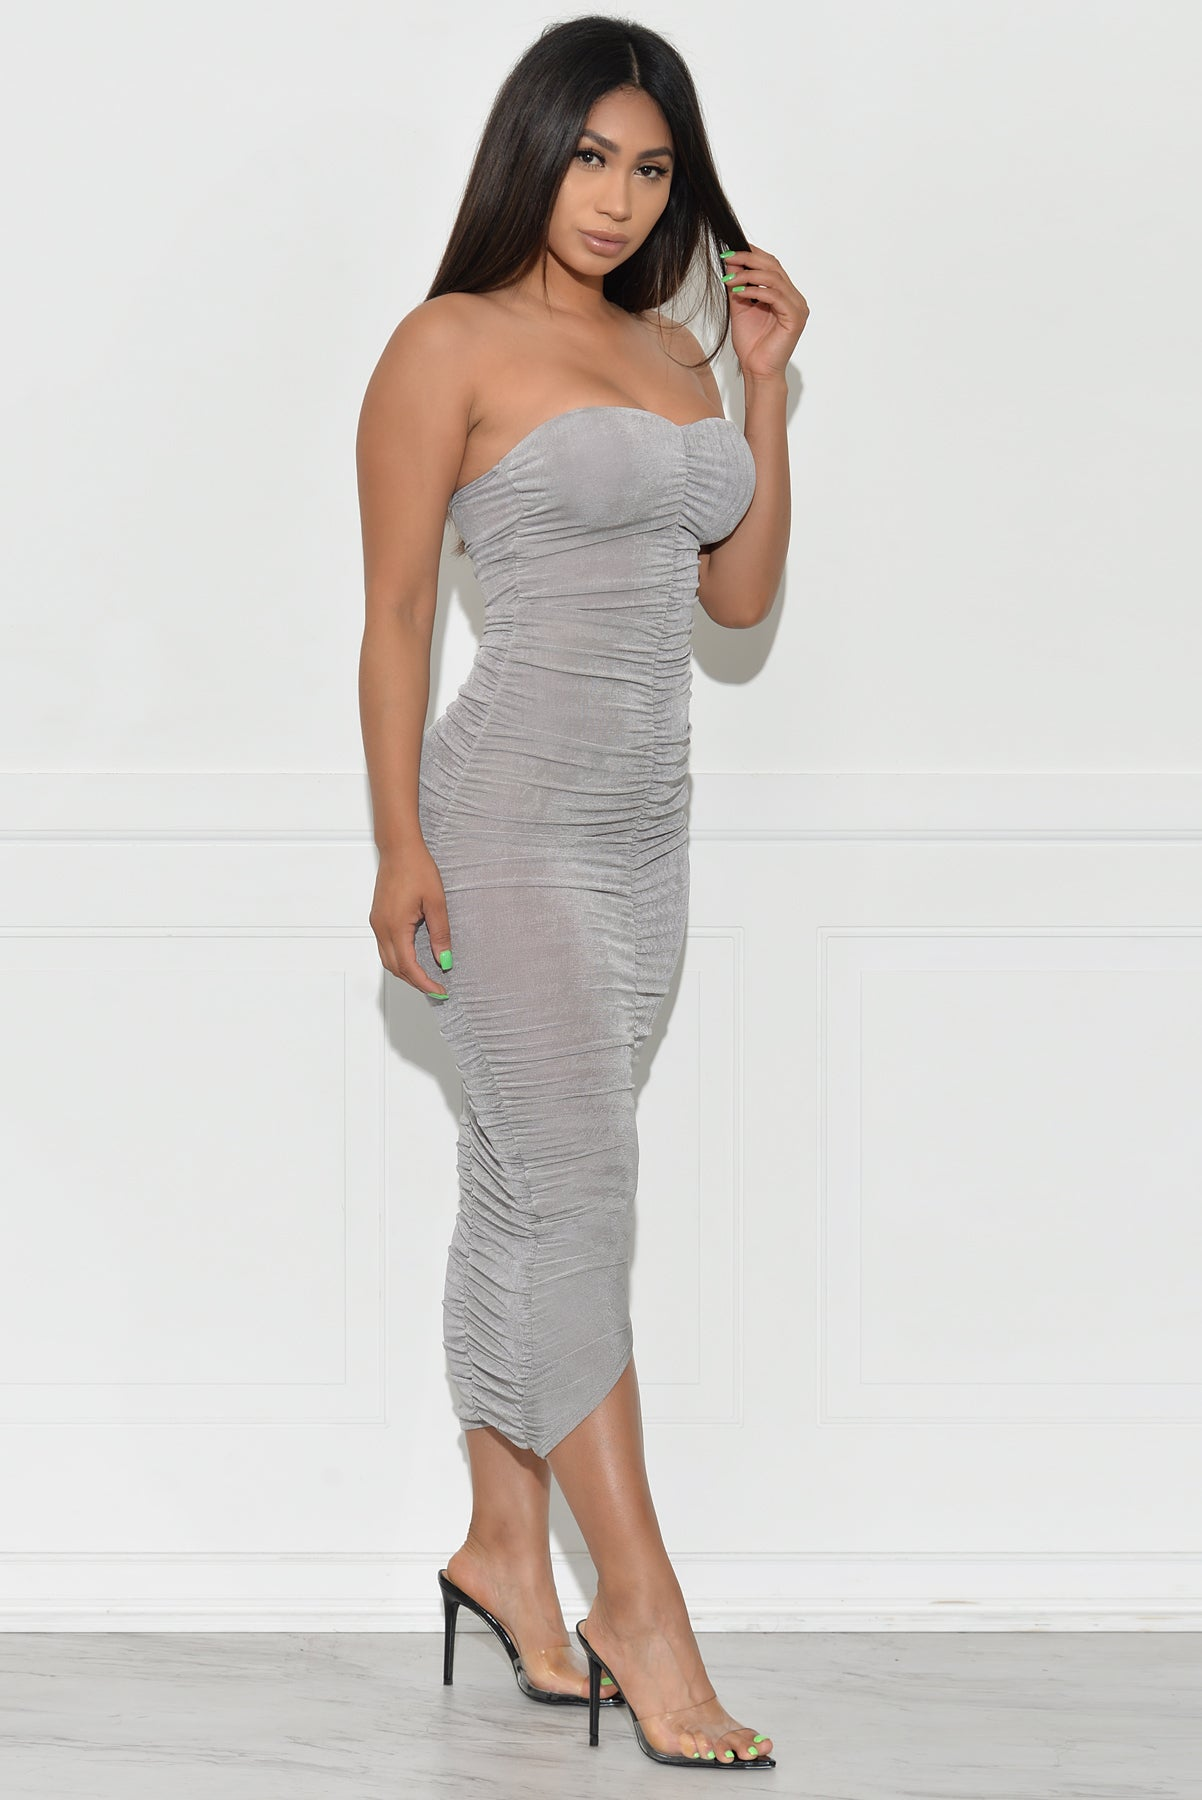 Summer Crush Dress - Silver